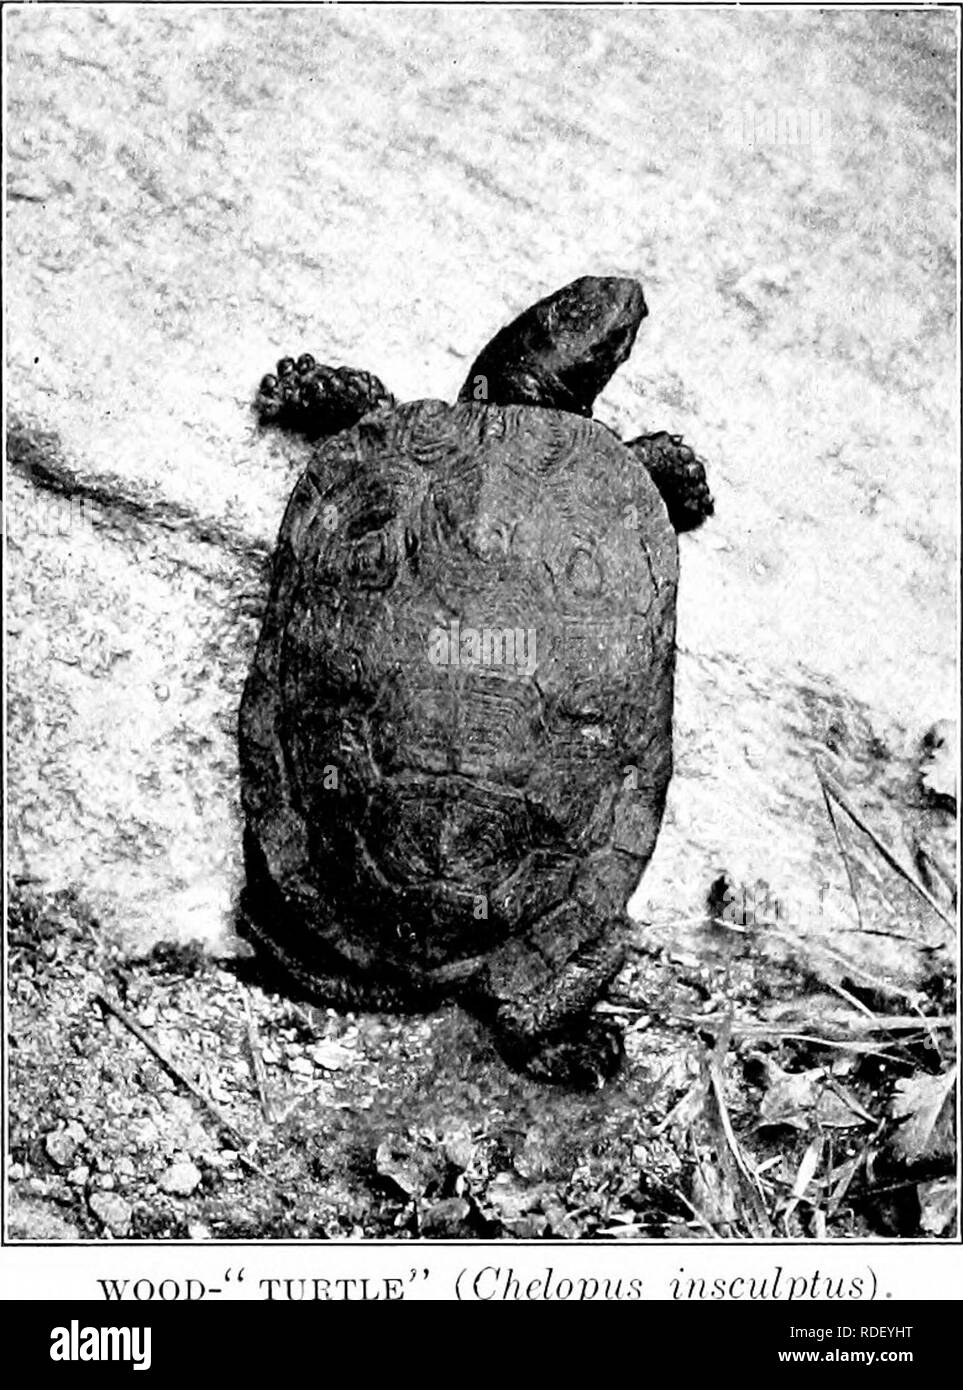 ". The American natural history; a foundation of useful knowledge of the higher animals of North America. Natural history. 328 ORDEES OF REPTILES—TORTOISES, TiiiiKArUxb, Aivj^ jLuiixxj^o in outlinp, and its scales are marked by inde- pendent black patterns composed of many geo- metric figures, placed one within another. A. WOOD-"" turtle"" (Chclopiis iii^culplu Back rugose. An exception to the rule of Sniooth- xShelled Terrapins. specimen with a ijlastroii seven inches long, and weighing a pound is a large one. Formerly the great majority measured between 4 and .5 inches; but now, it is - Stock Image"